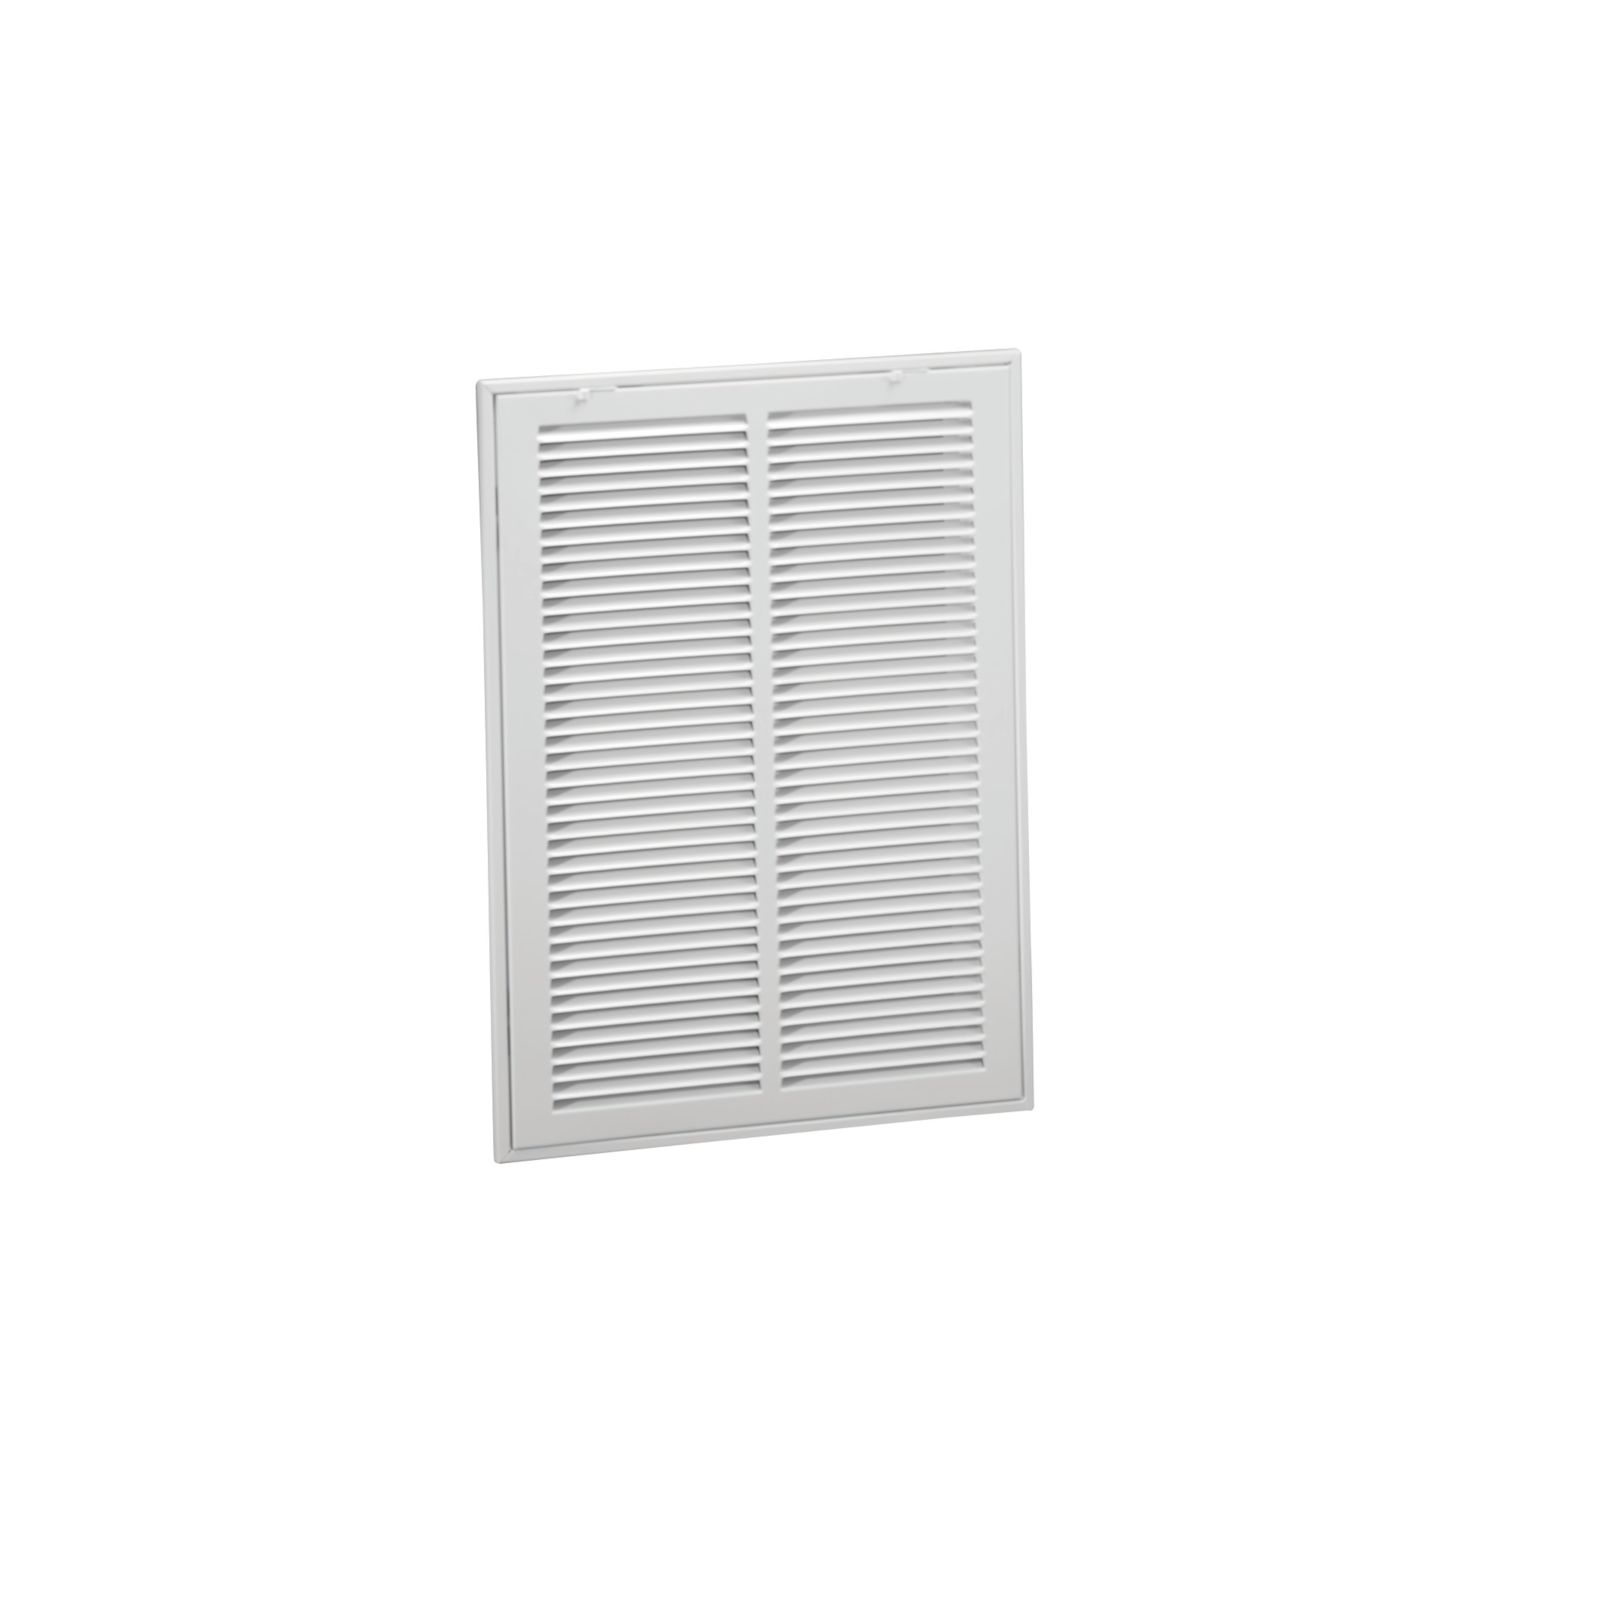 "Hart & Cooley 043540 - #673 Steel Return Air Filter Grille, Golden Sand Finish, 20"" X 20"""